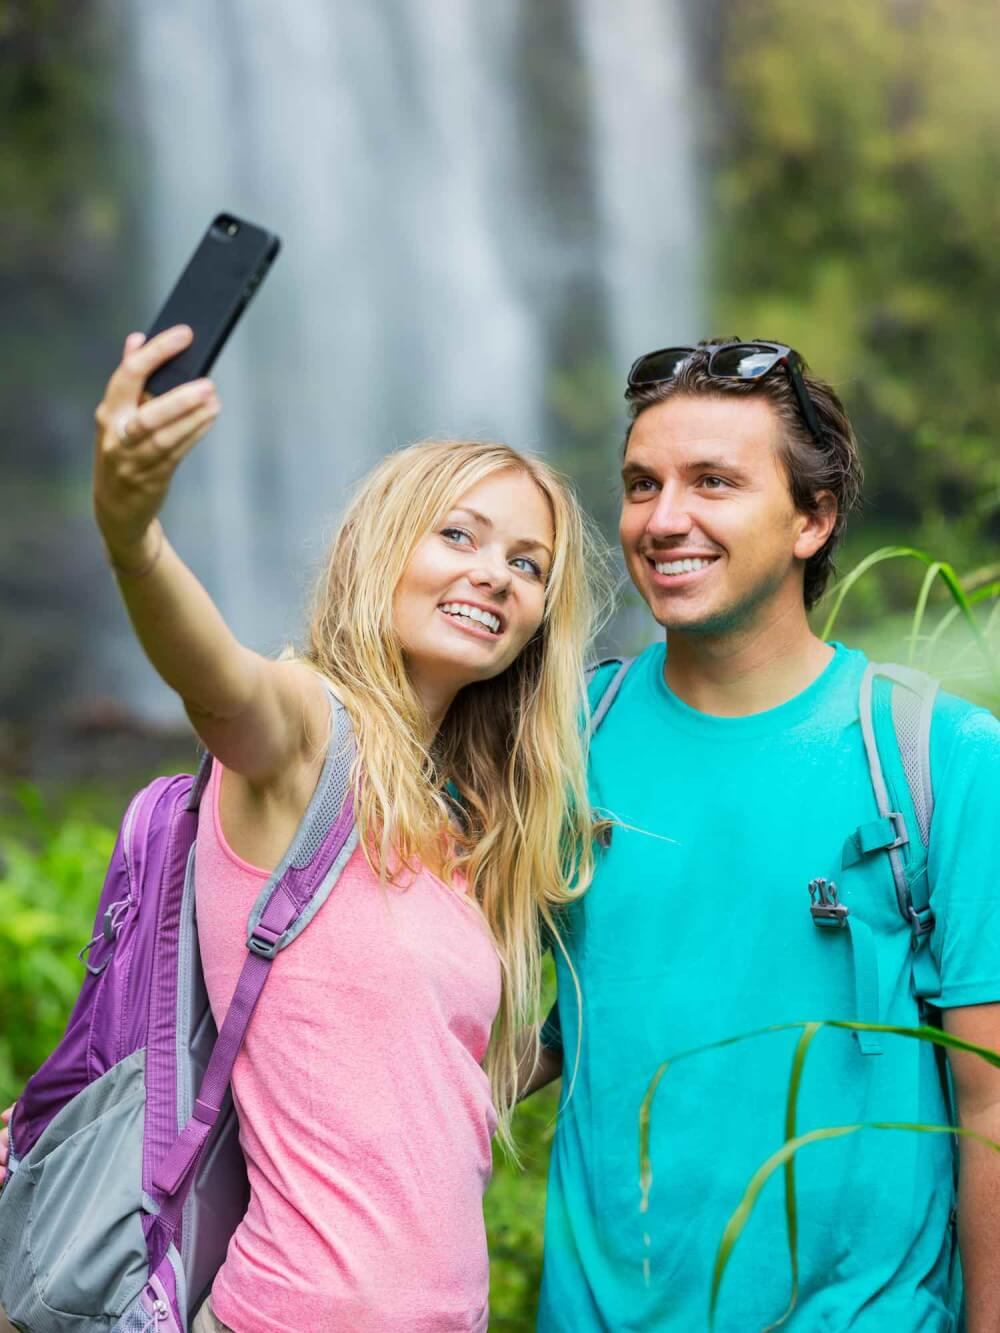 Find out the biggest Hawaii mistakes tourists make in this list by top Hawaii blog Hawaii Travel with Kids. Image of Couple having fun together outdoors. Taking self portrait with camera phone after hiking to incredible waterfall in Hawaii.